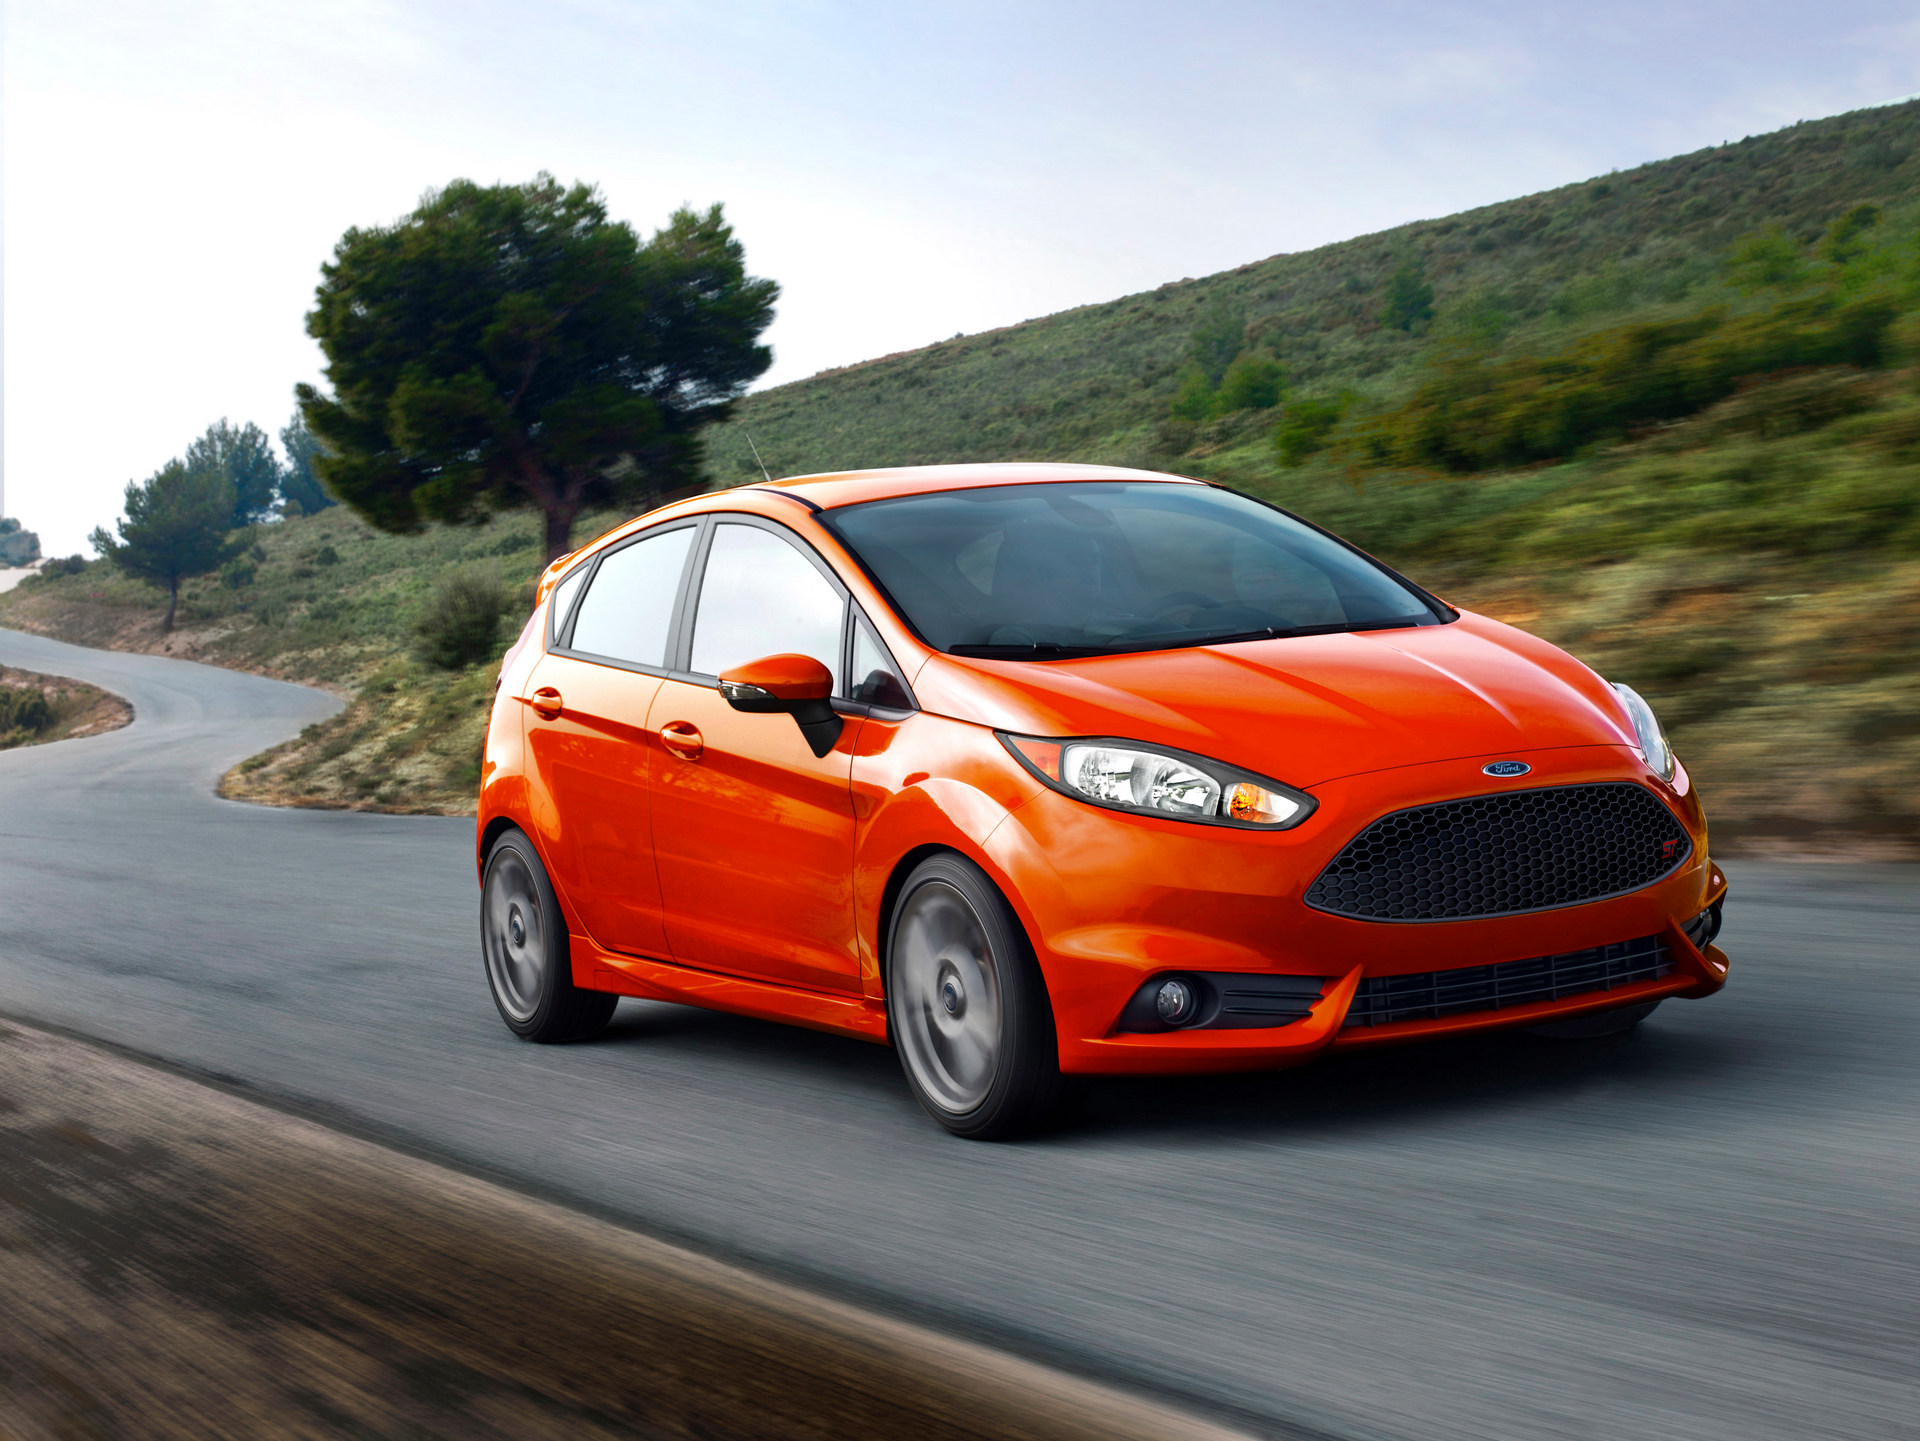 2016 Ford Fiesta ST © Ford Motor Company